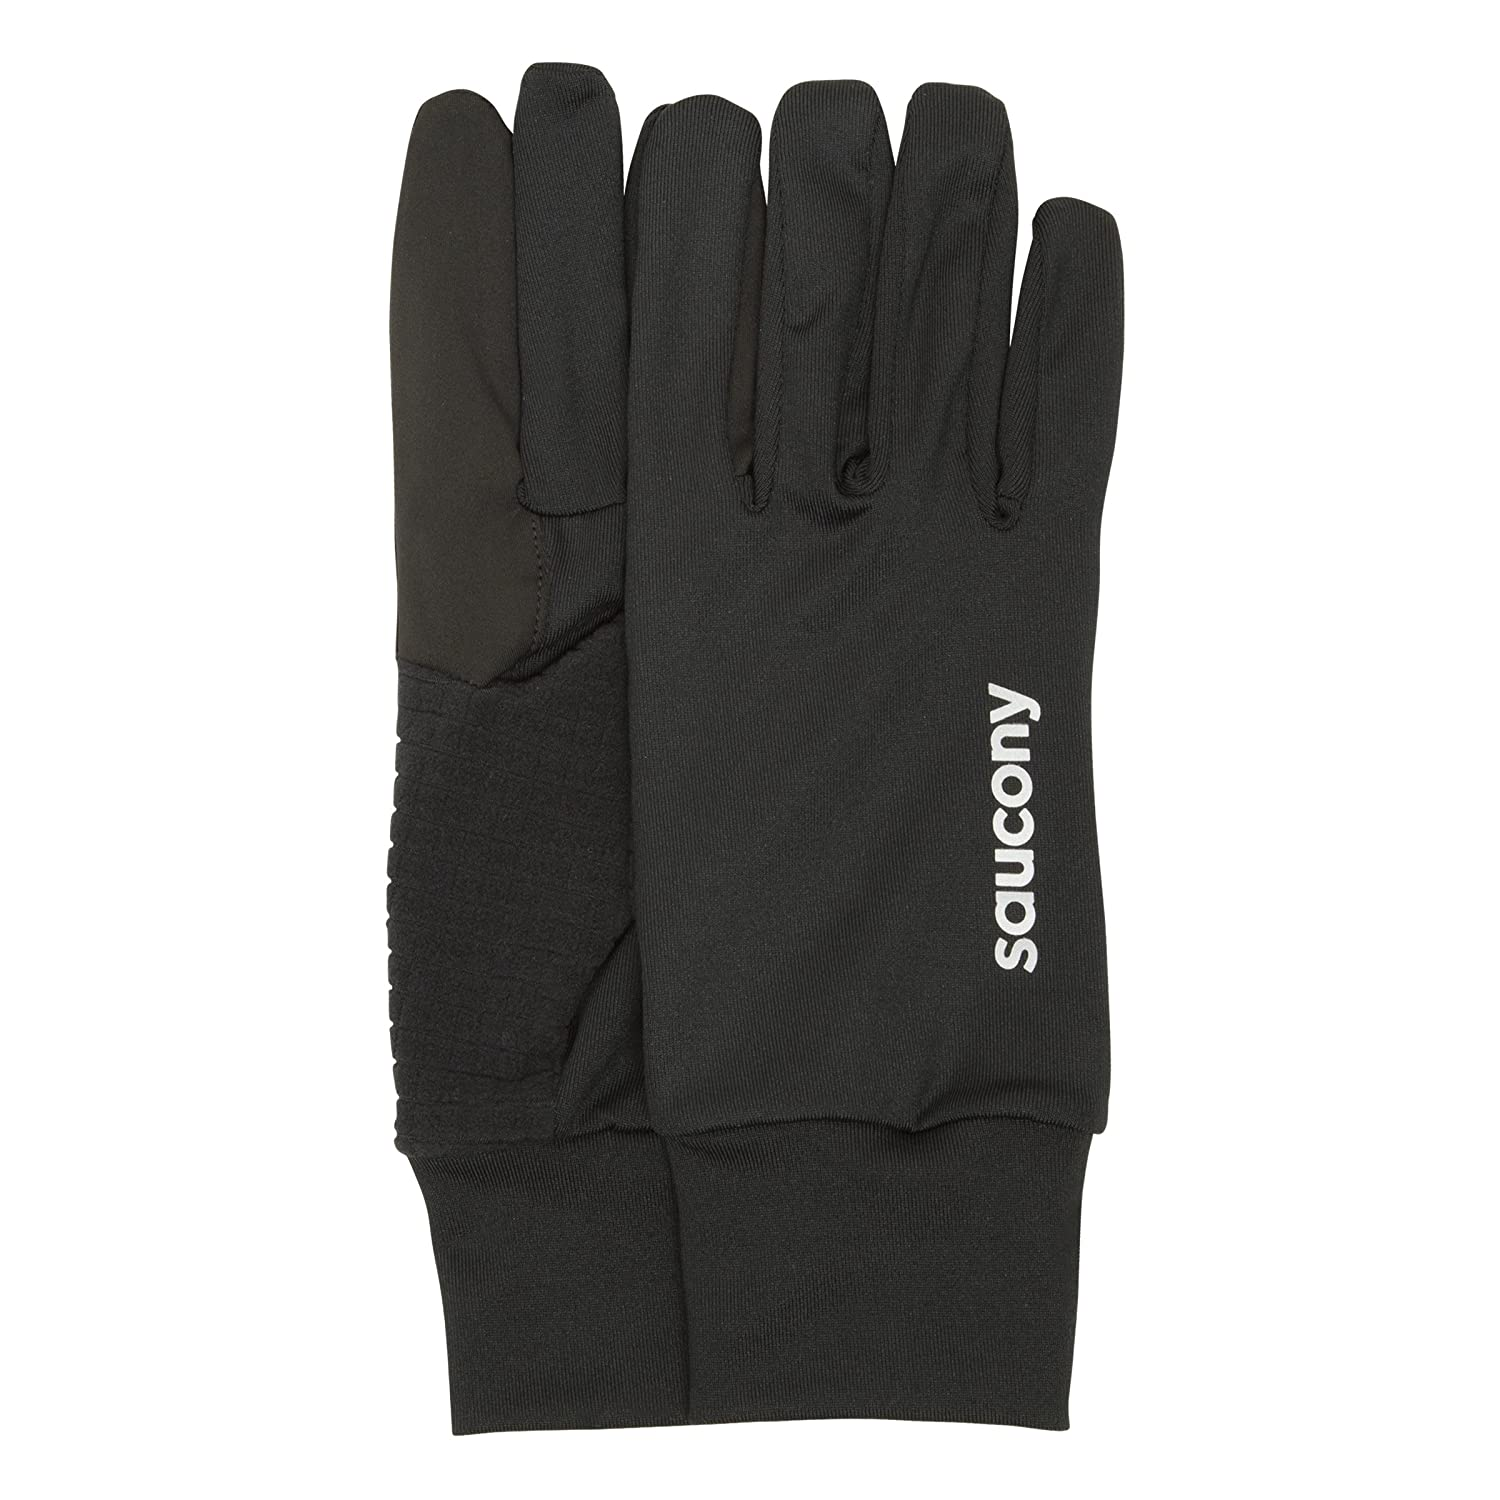 Saucony Ultimate Touch-Tech Gloves Saucony Apparel